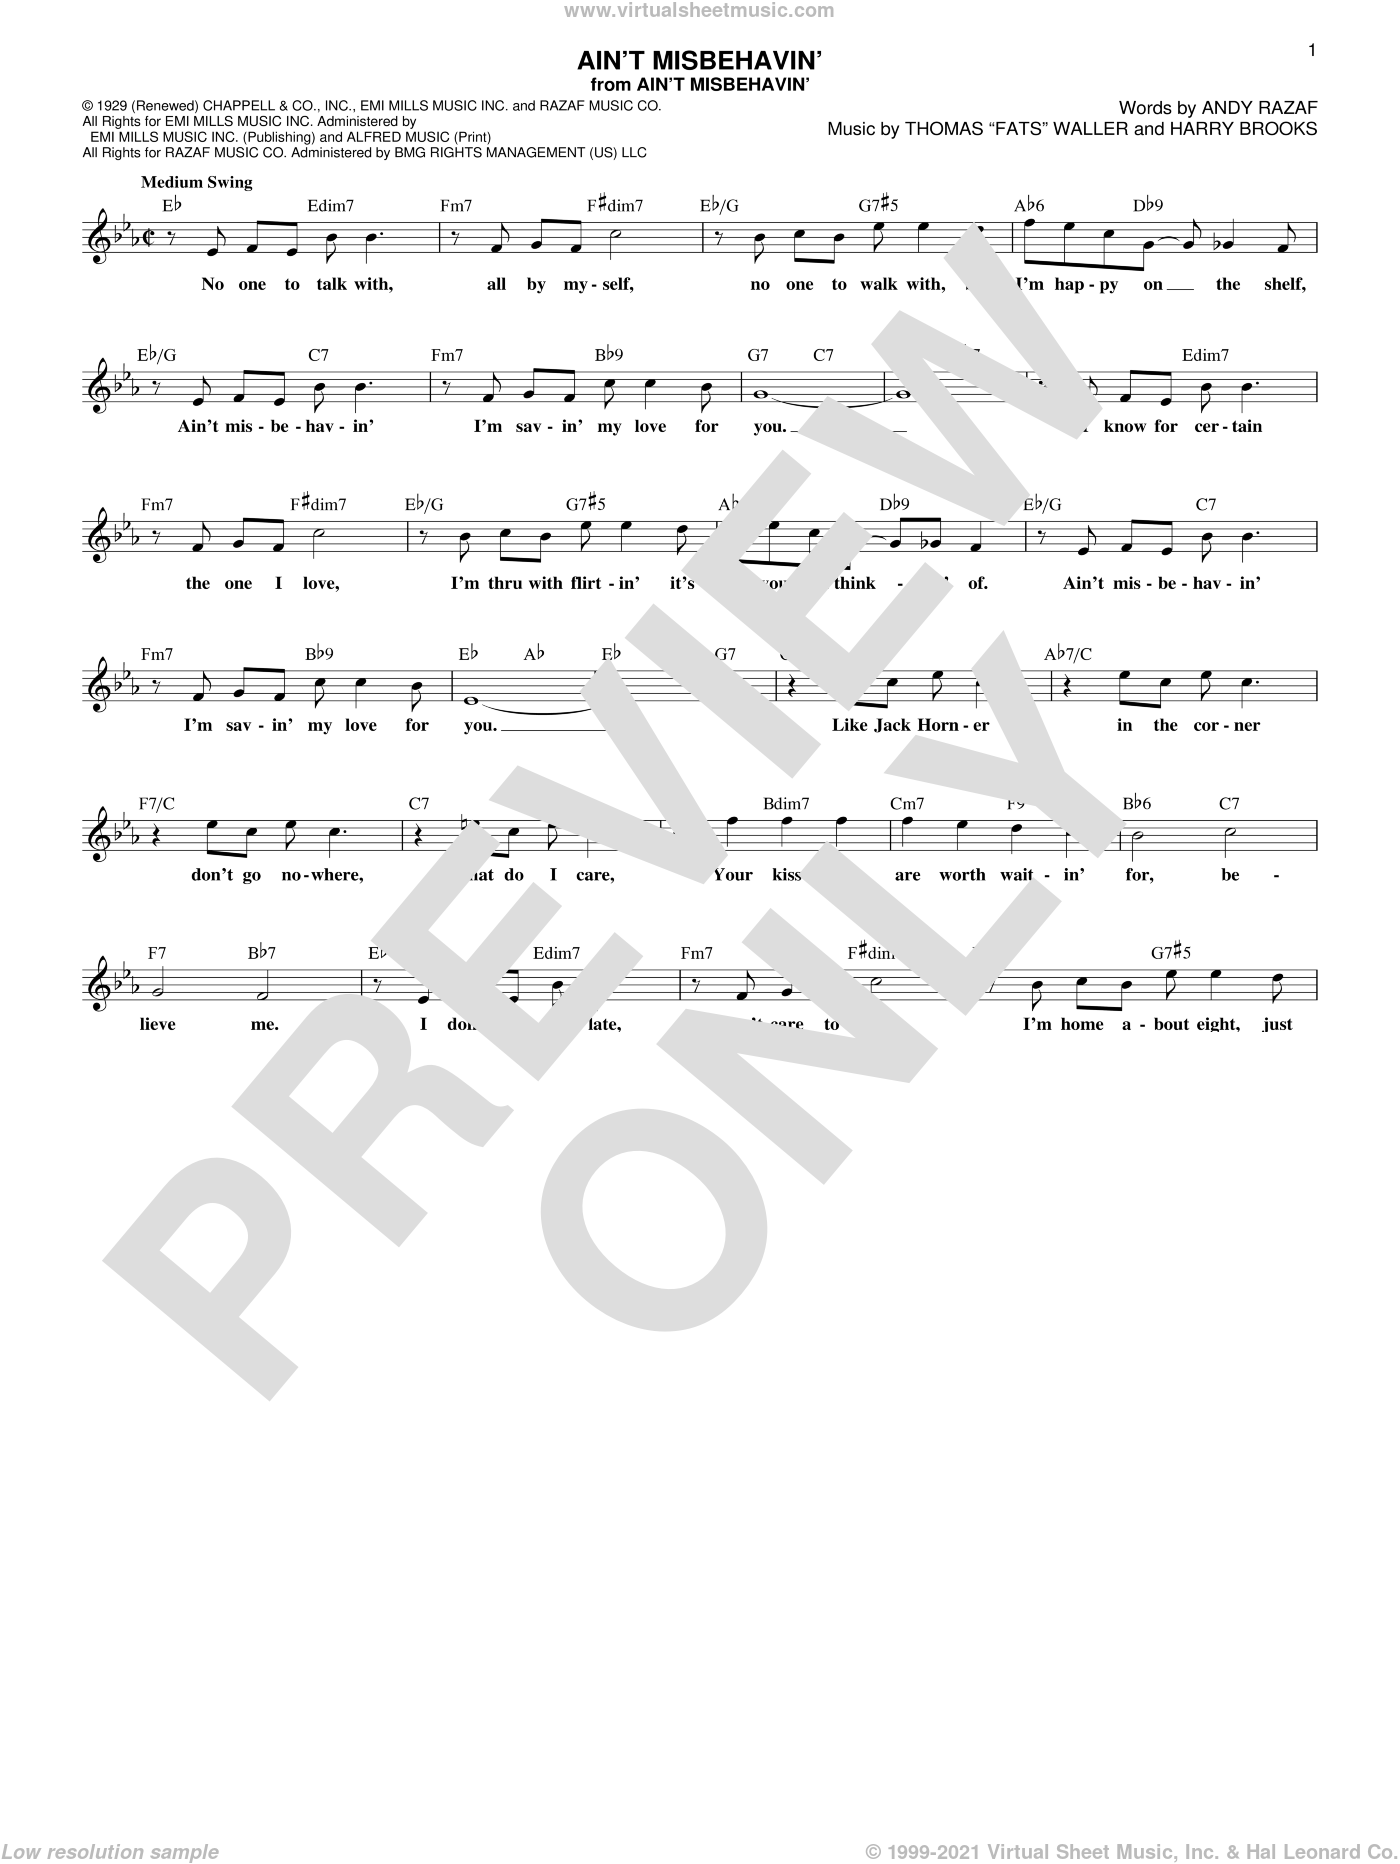 Ain't Misbehavin' sheet music for voice and other instruments (fake book) by Andy Razaf, Hank Williams, Jr., Thomas Waller and Harry Brooks, intermediate skill level